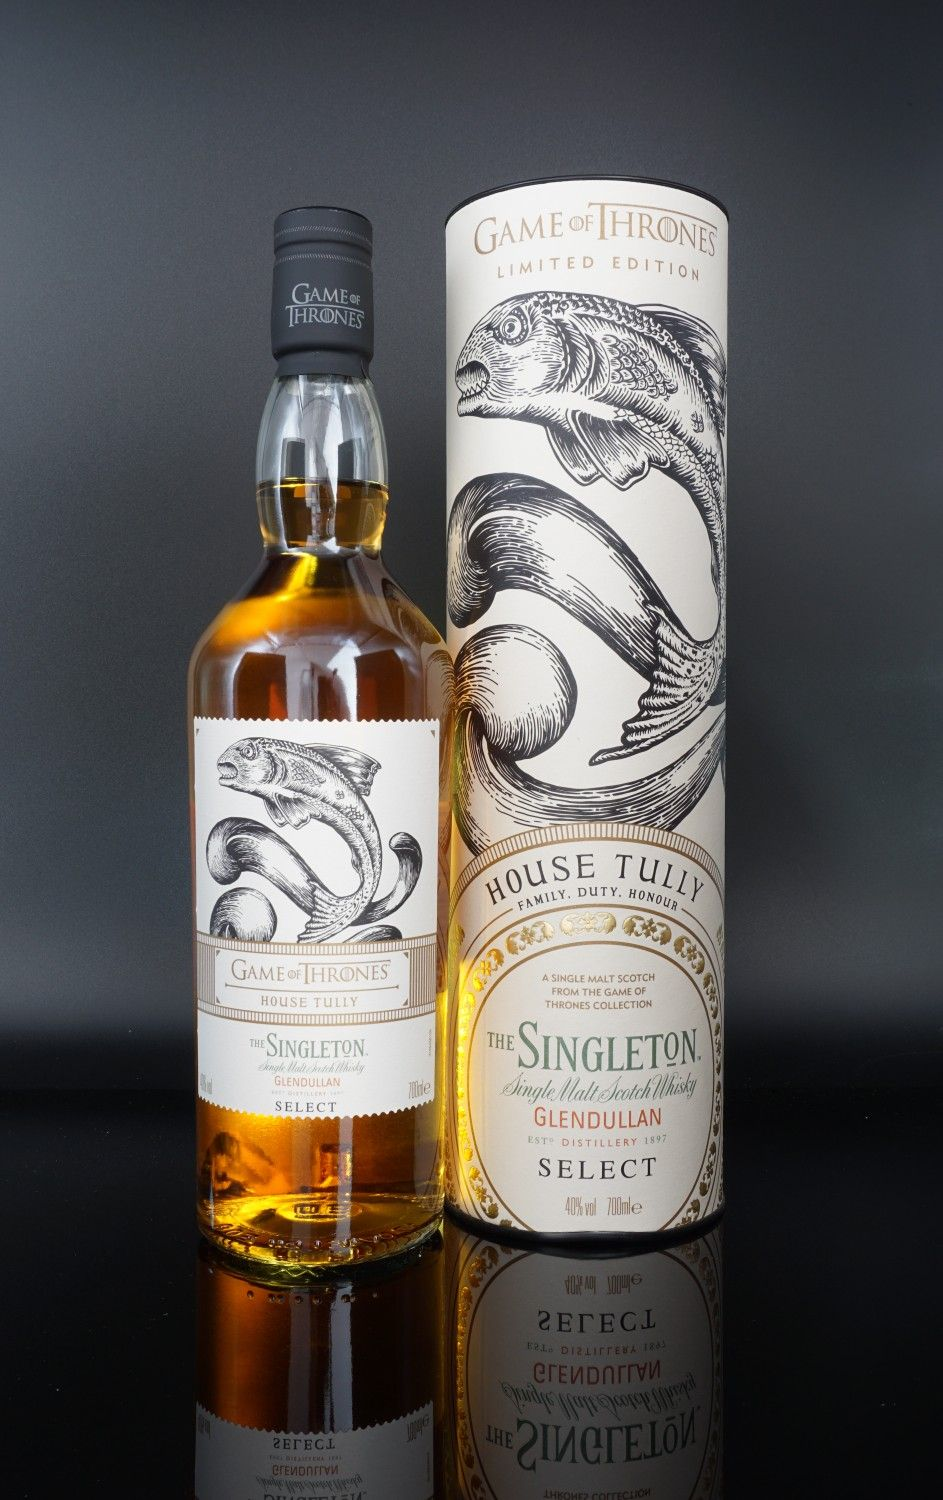 Games Of Thrones House Tully in 2020 Whisky, Whisky